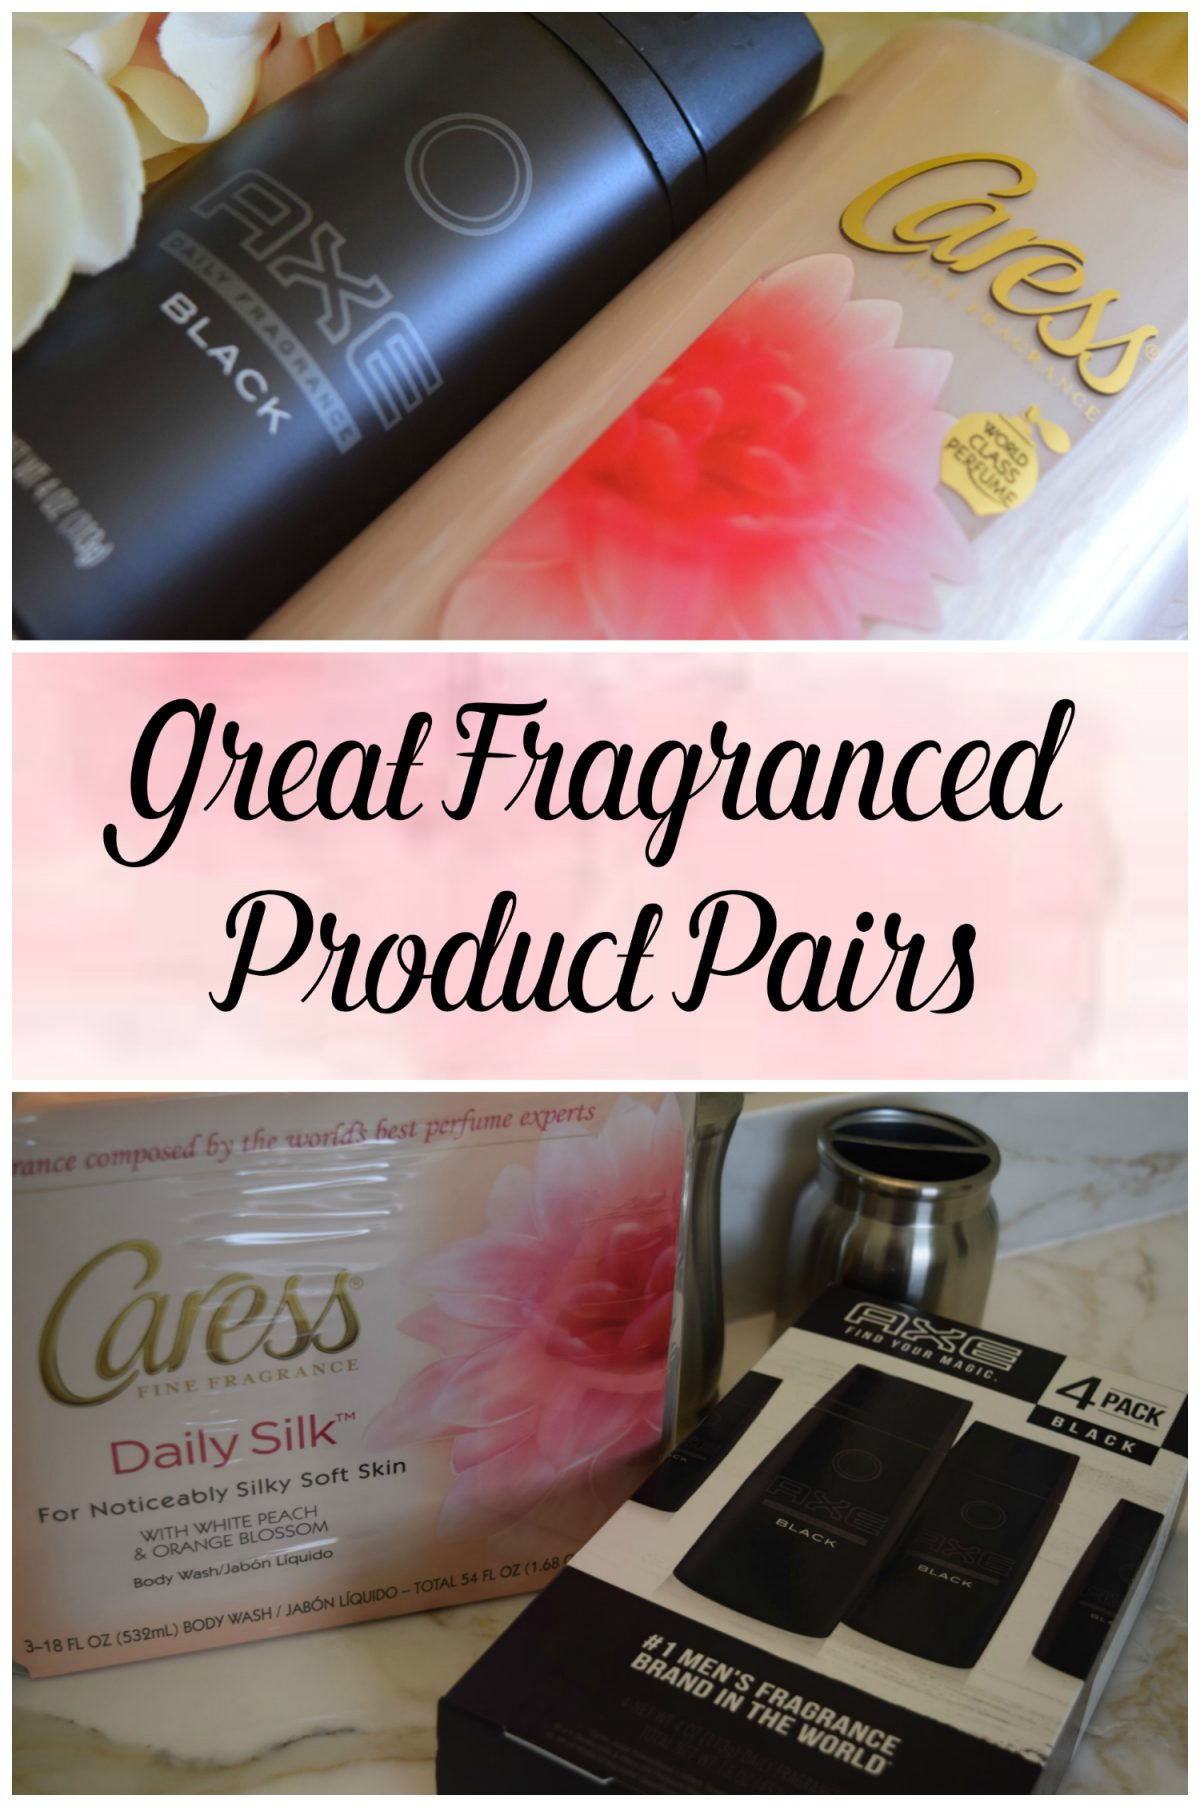 fragrance product pairs